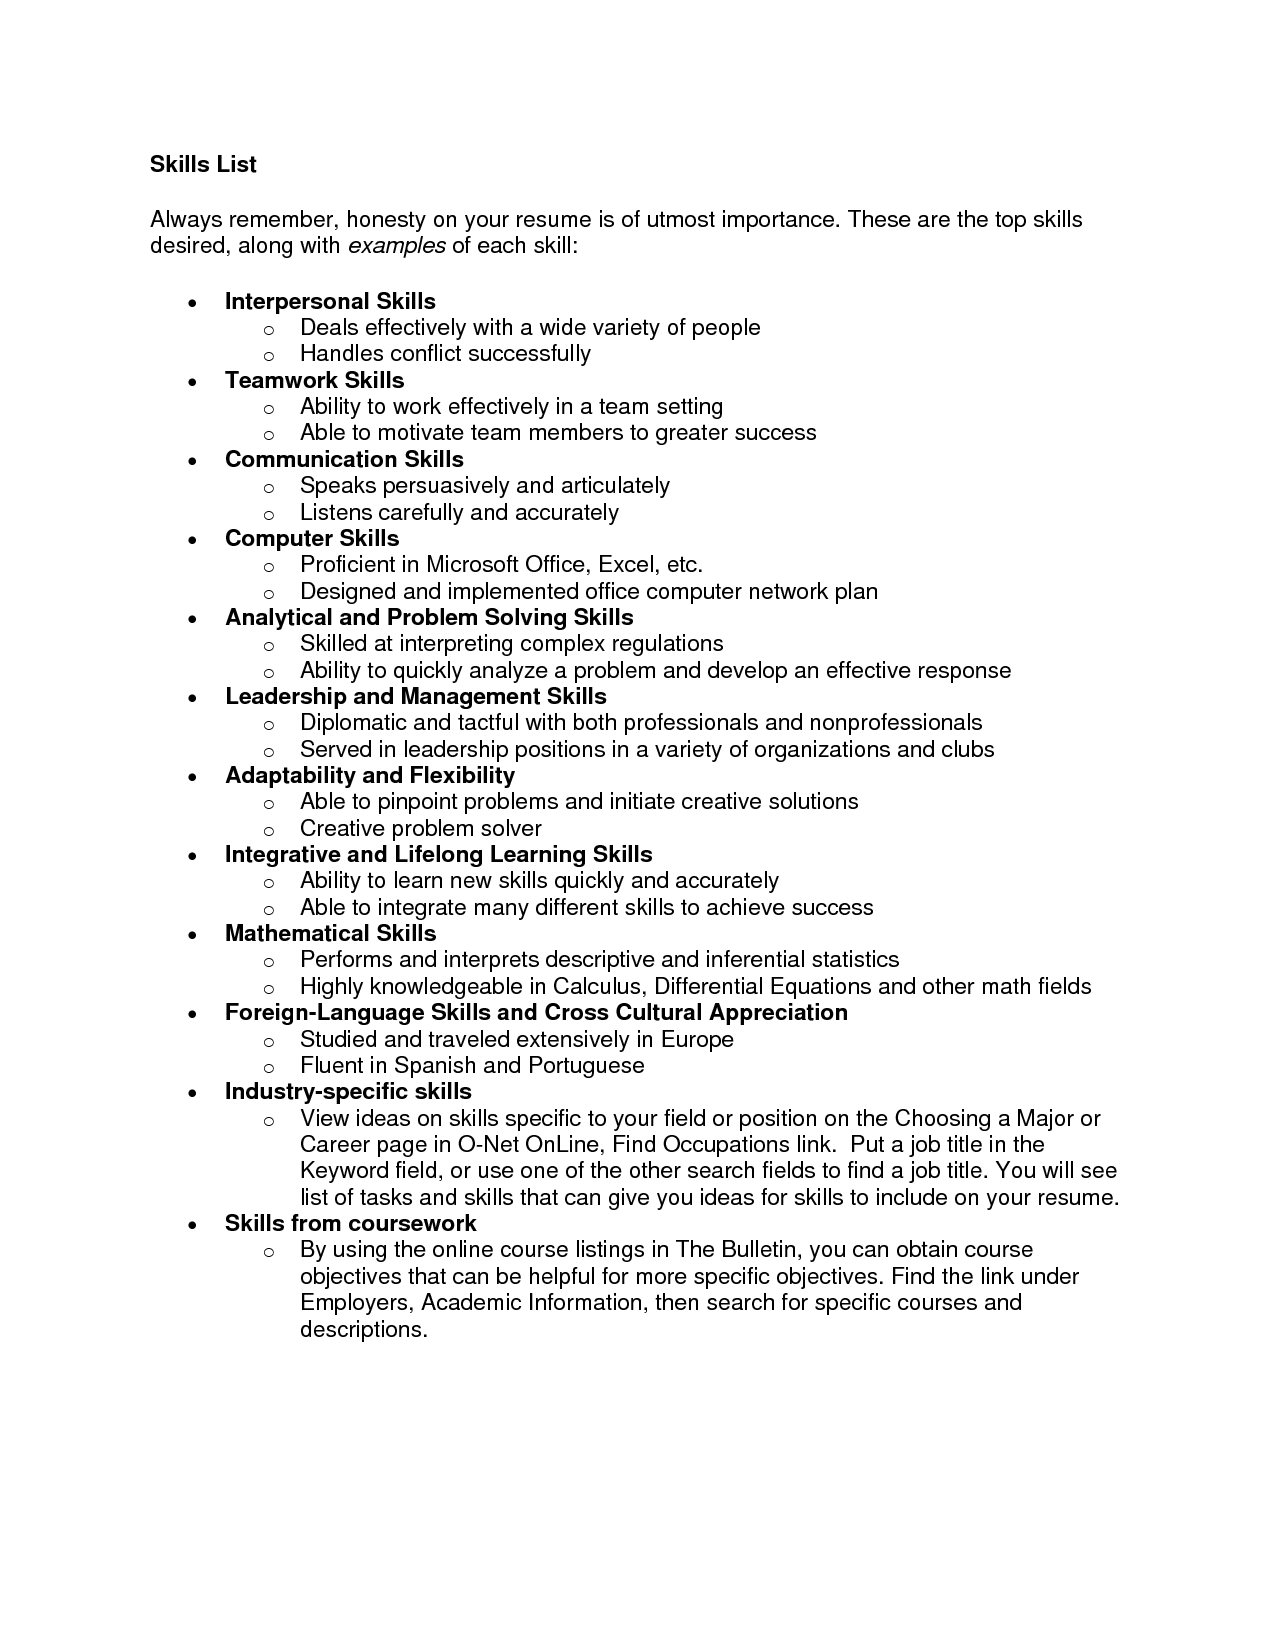 Good Skills Resume Sample List In Key Skills To Put On Resume